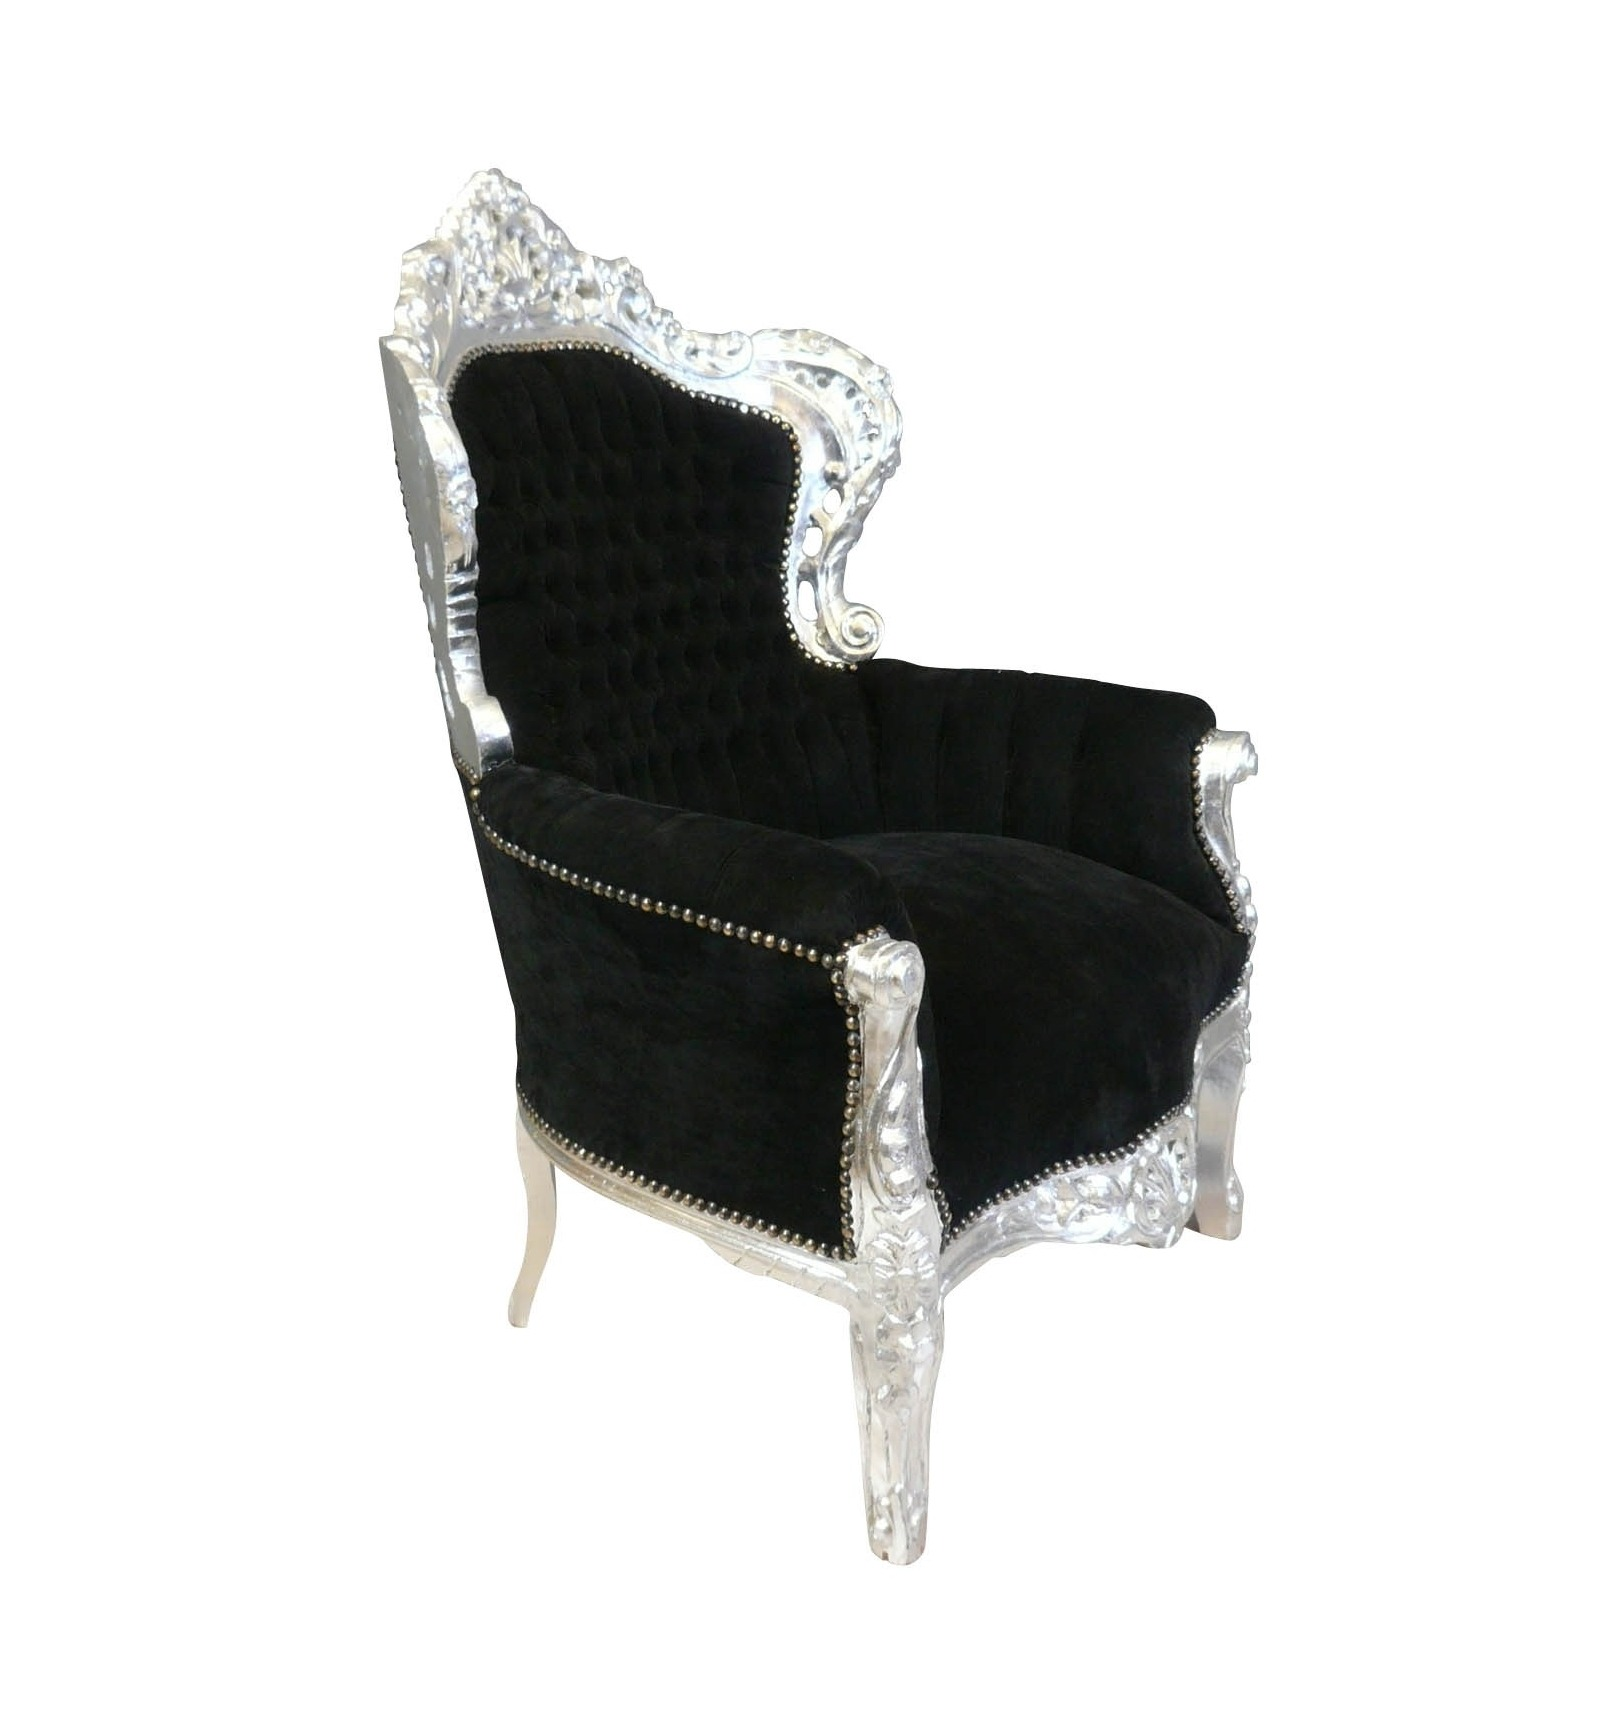 Chaises Baroques Pas Cher Chaise Baroque Pas Cher Bar Chair Baroque Style Of Louis